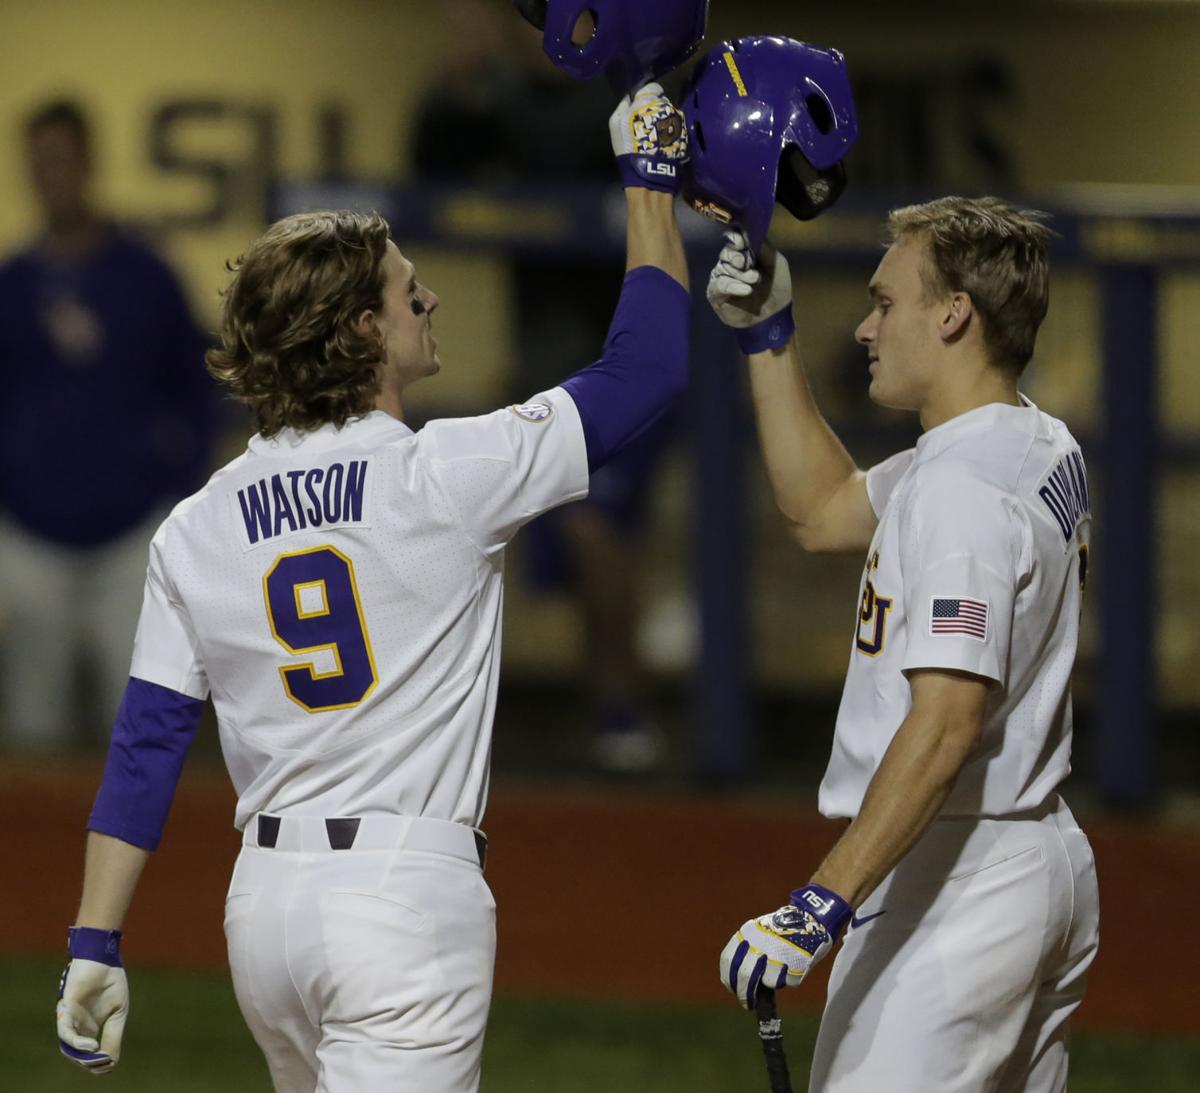 'We love facing SEC pitching:' LSU prepares for top Missouri pitching staff after midweek loss